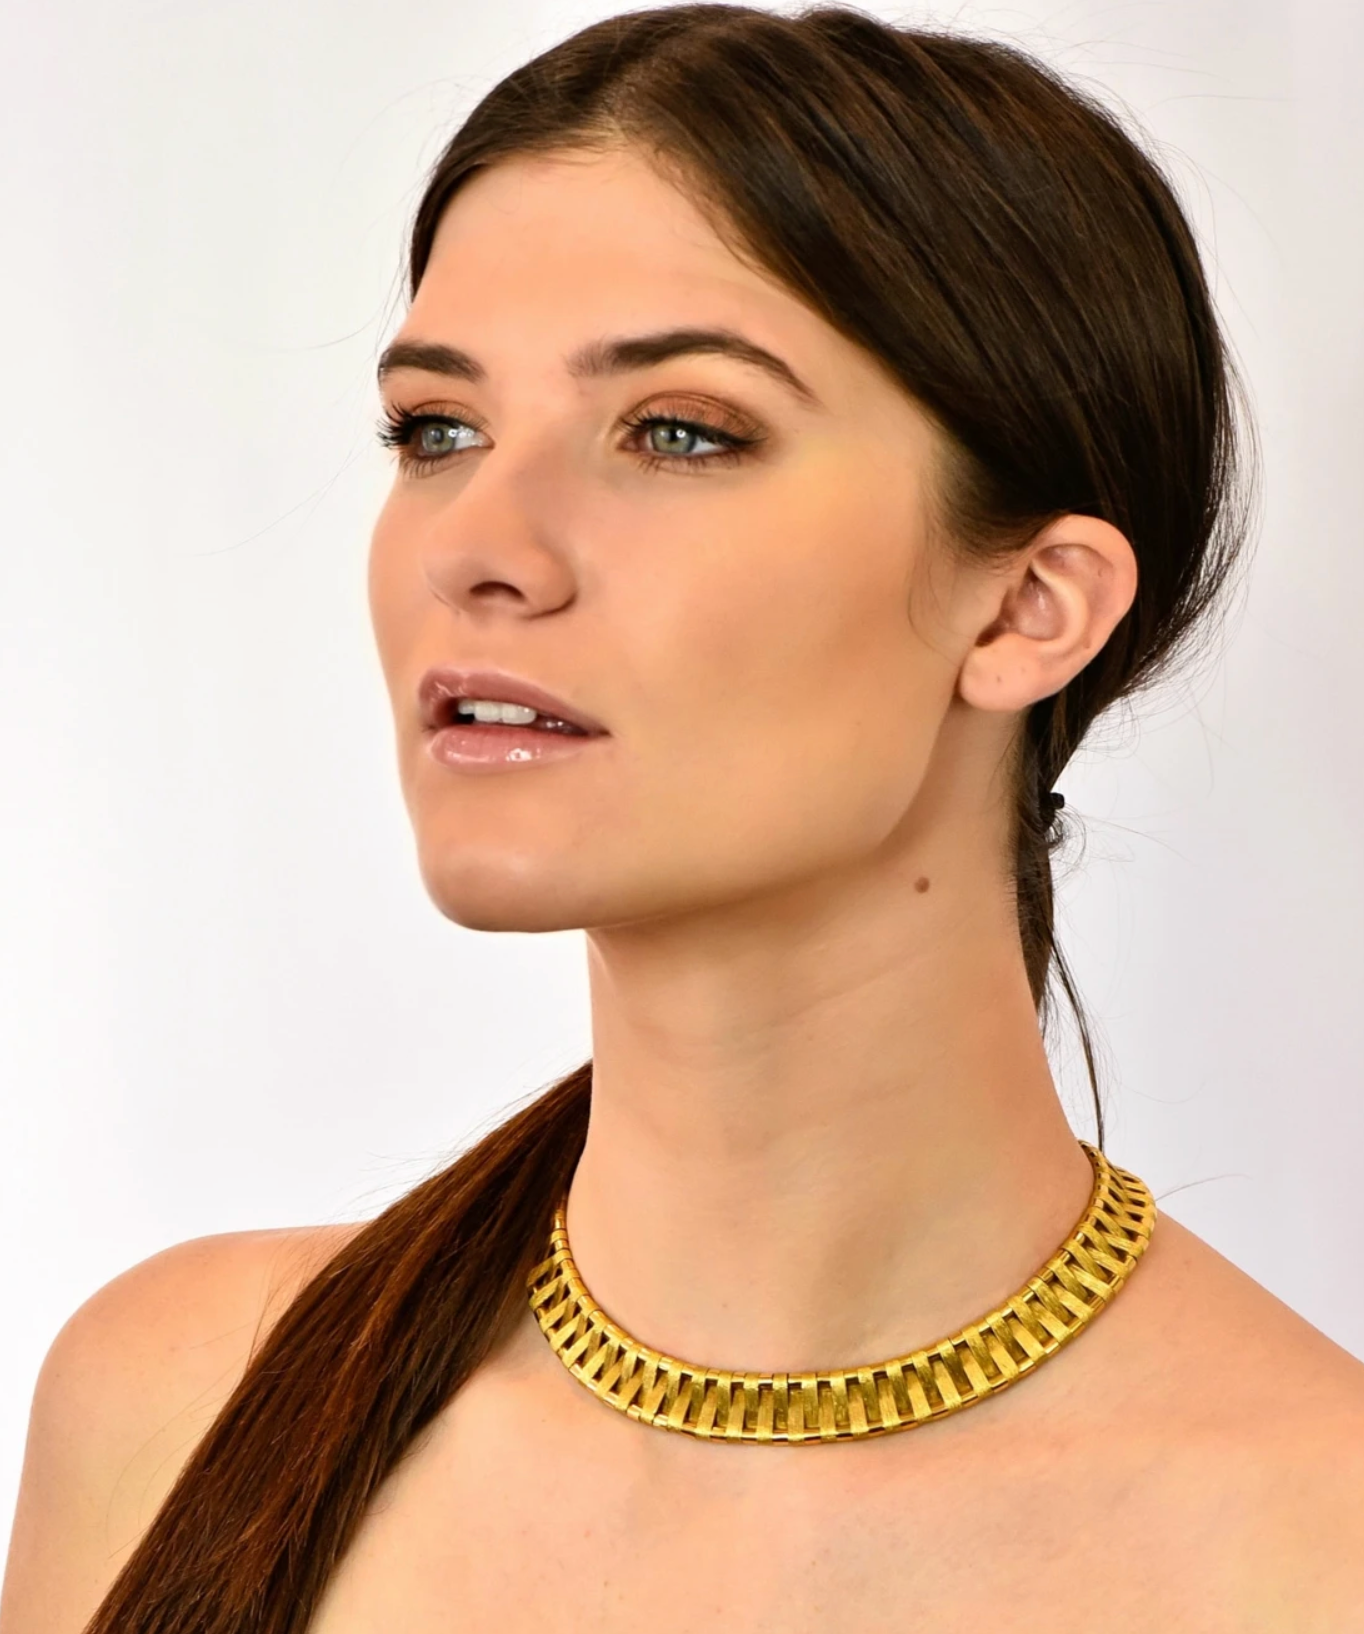 Model wearing Cartier 18 Karat Gold Egyptian Inspired Collar Necklace Vintage Jewelry